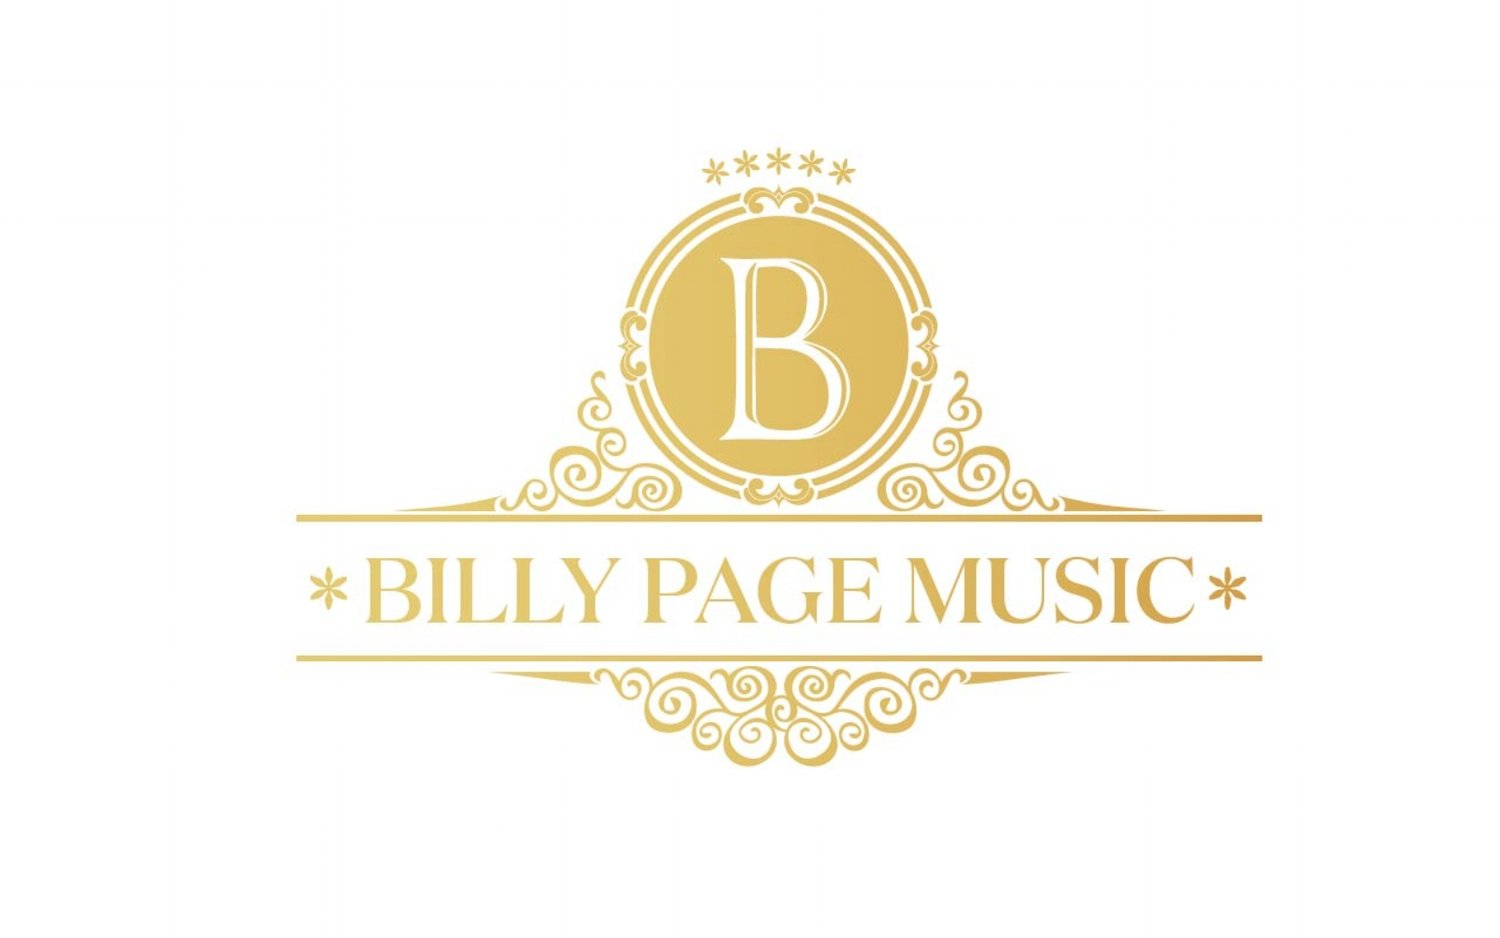 Billy Page Music